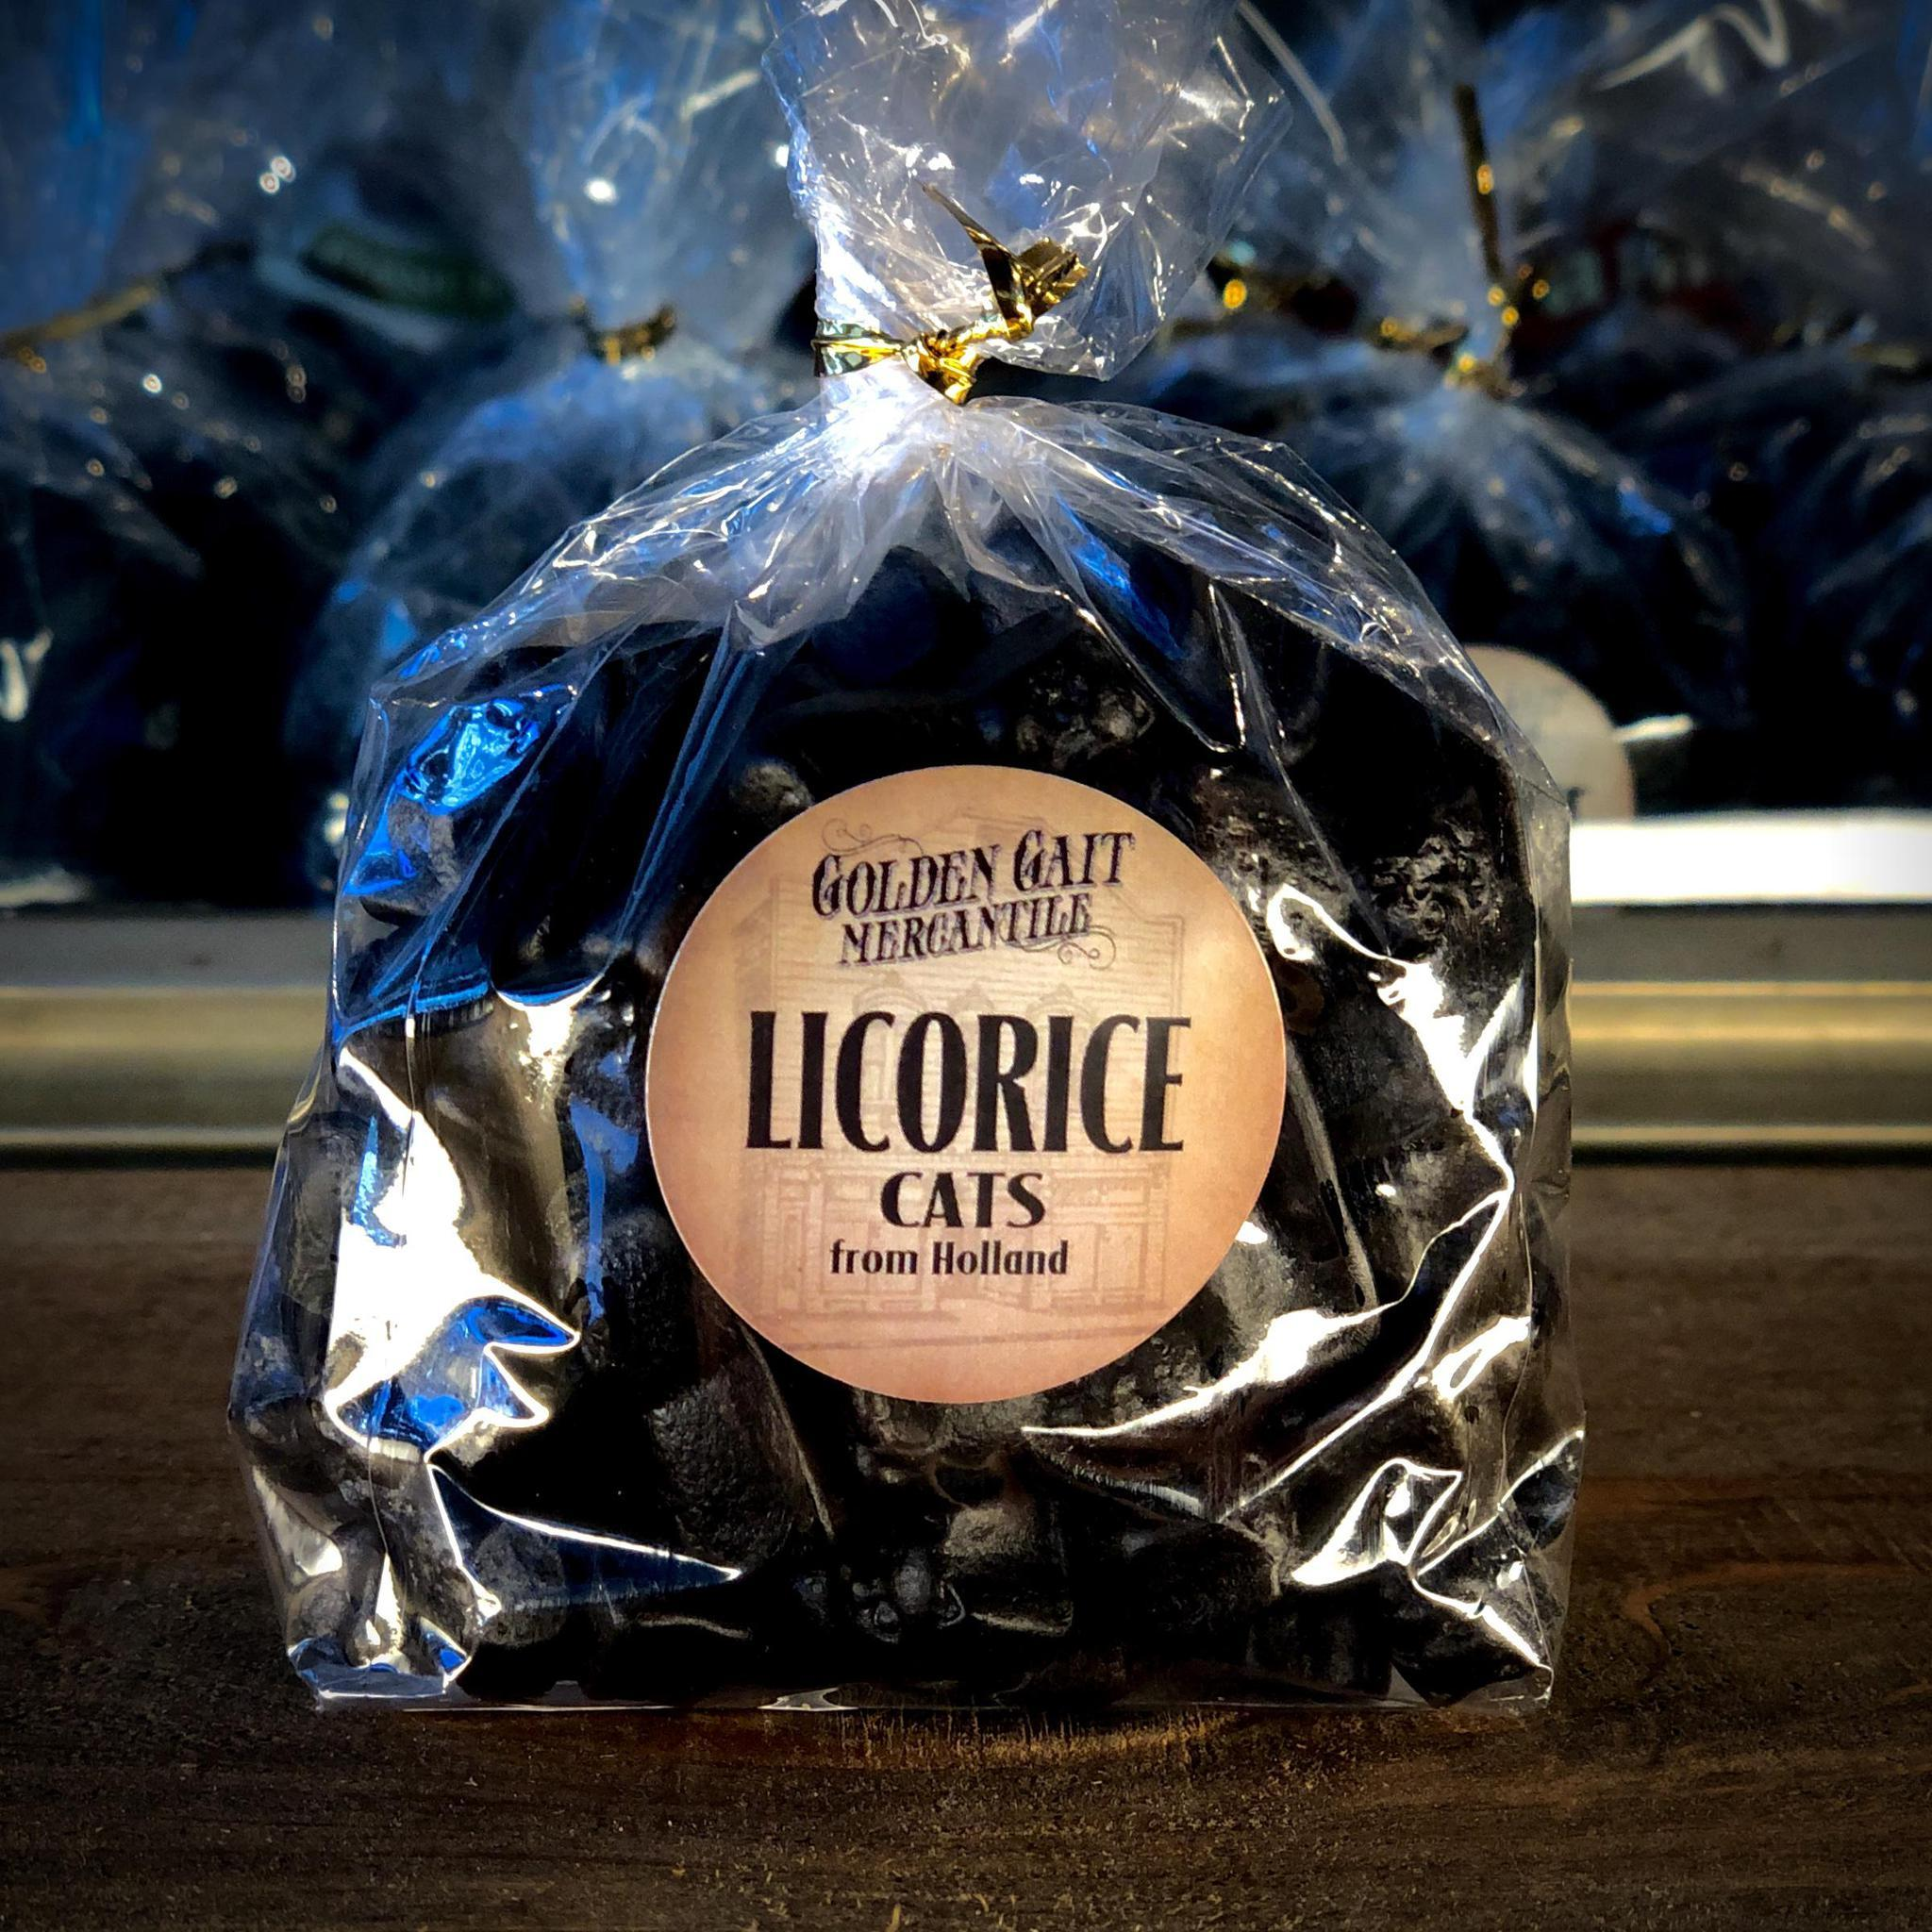 Licorice Cats By The Golden Gait Mercantile